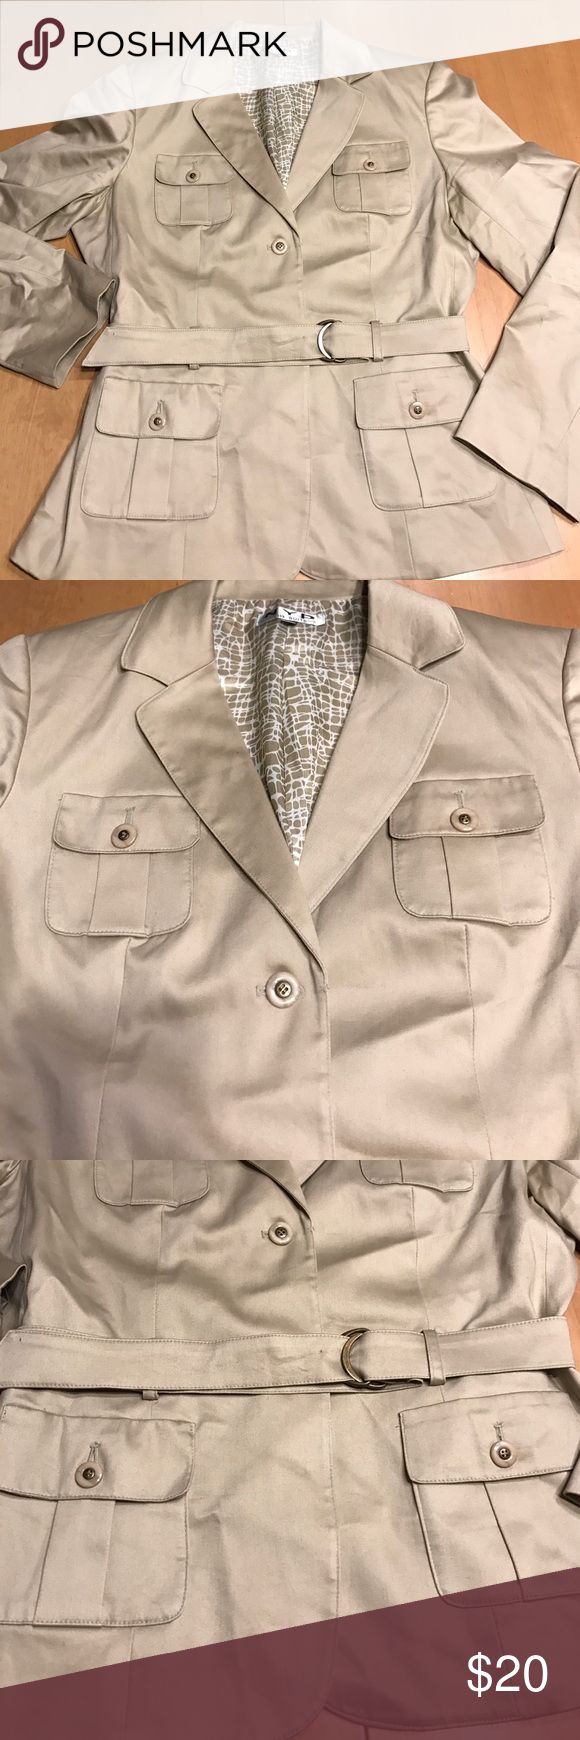 NYP suit jacket NWOT great safari style sz 16 Great jacket. Very cute on. New without tags! Check out my other items the same size. Make a bundle and offer! Comes from a pet free smoke free home. Jackets & Coats Blazers